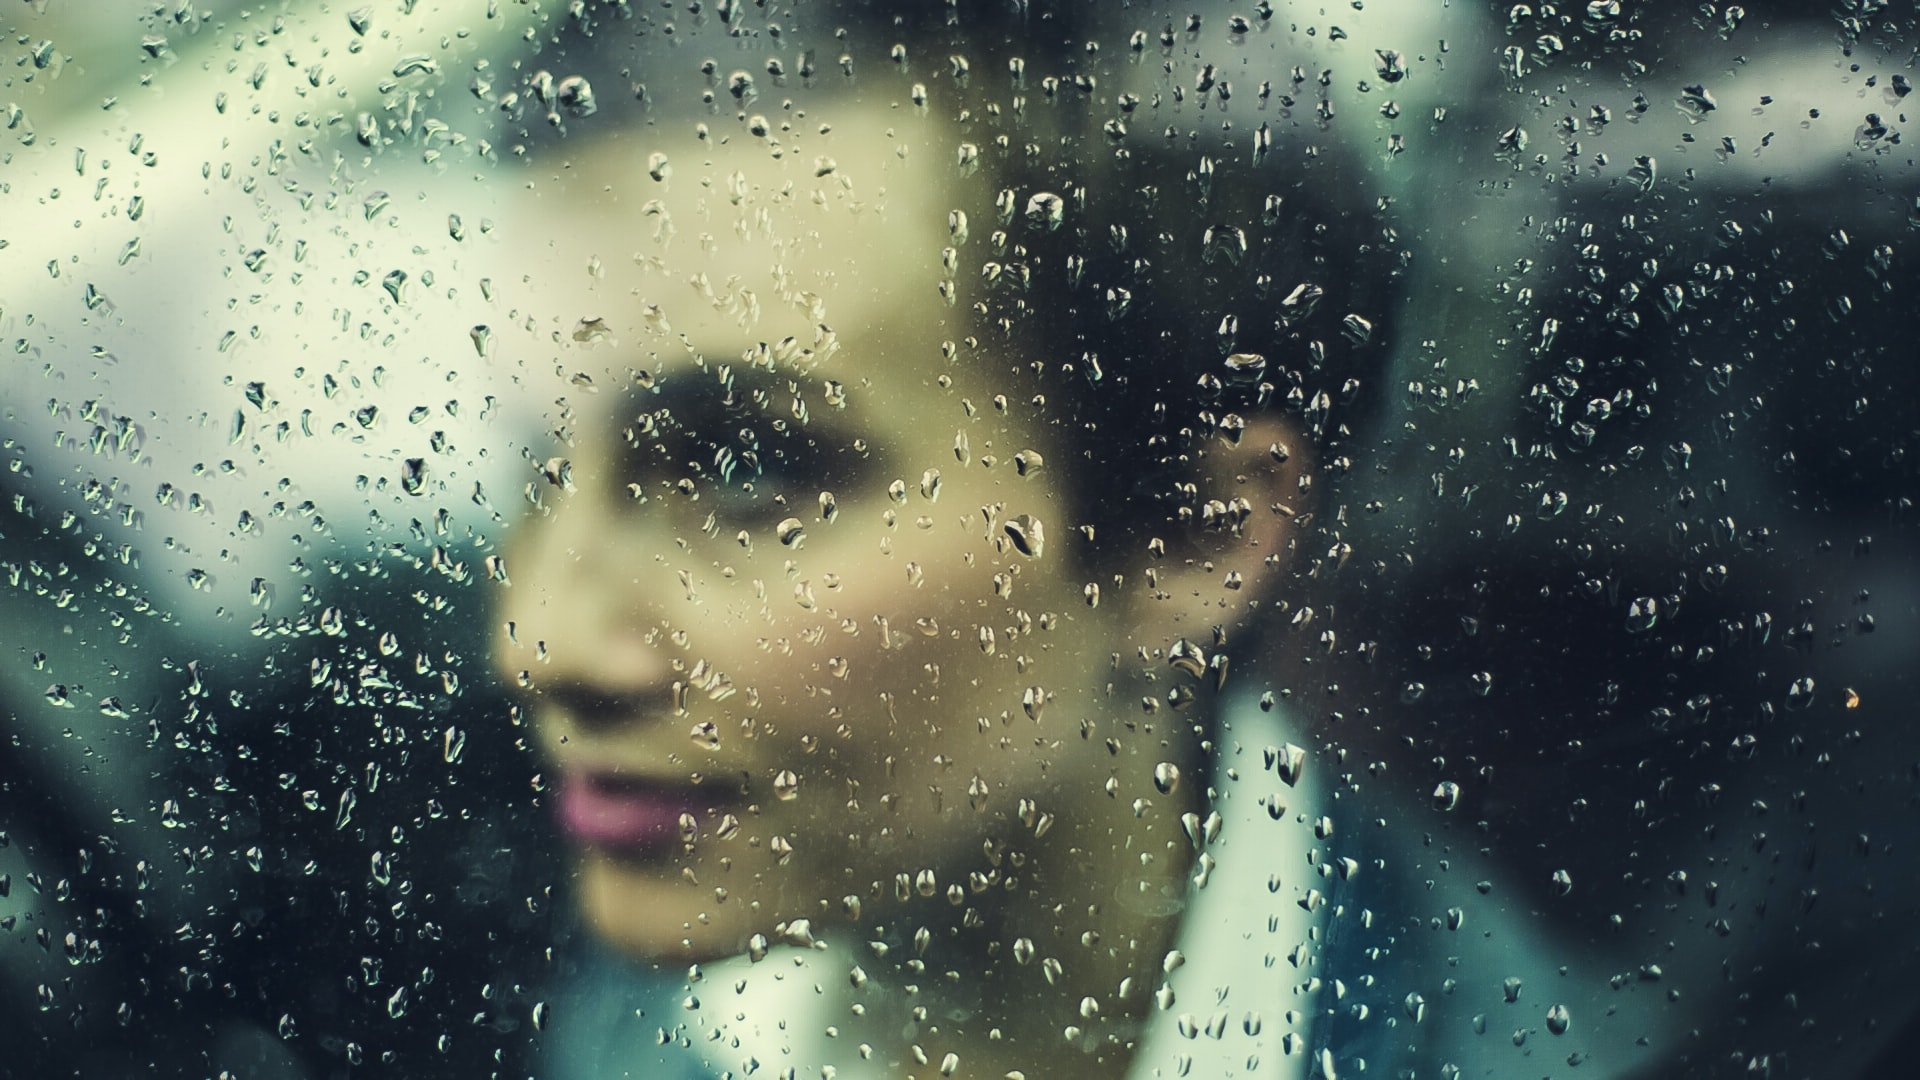 A woman's face seen through a rain-streaked window